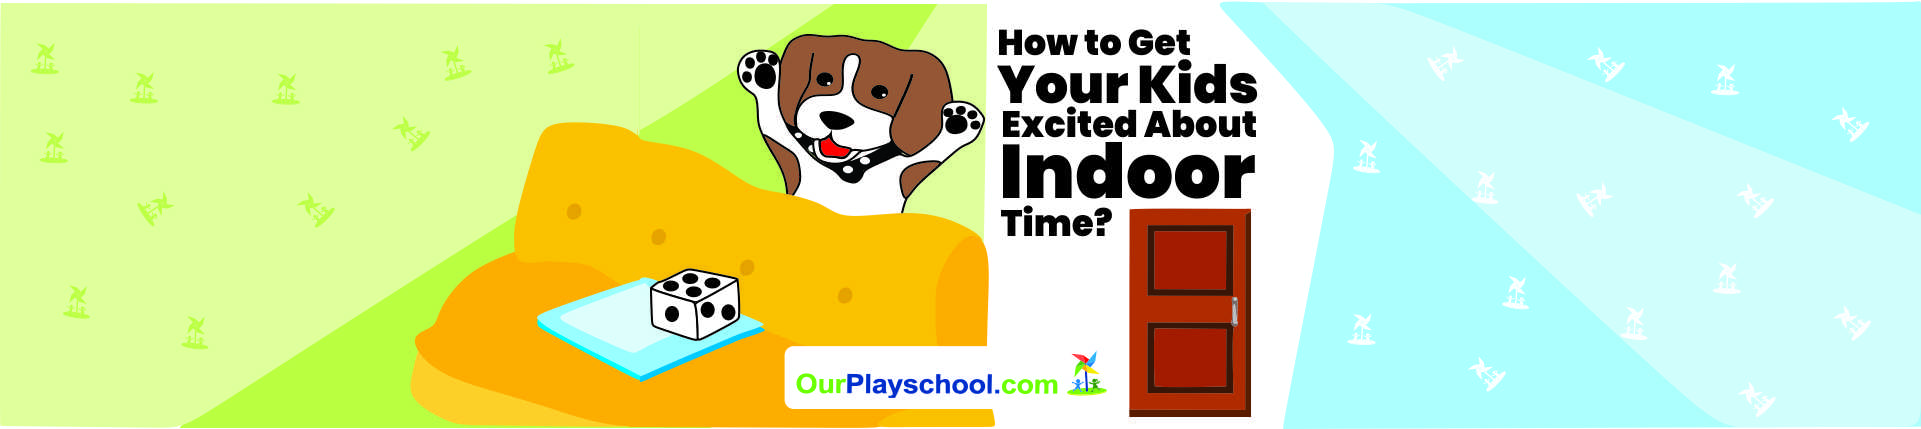 Tips to Get Your Kids Excited for Indoor Time